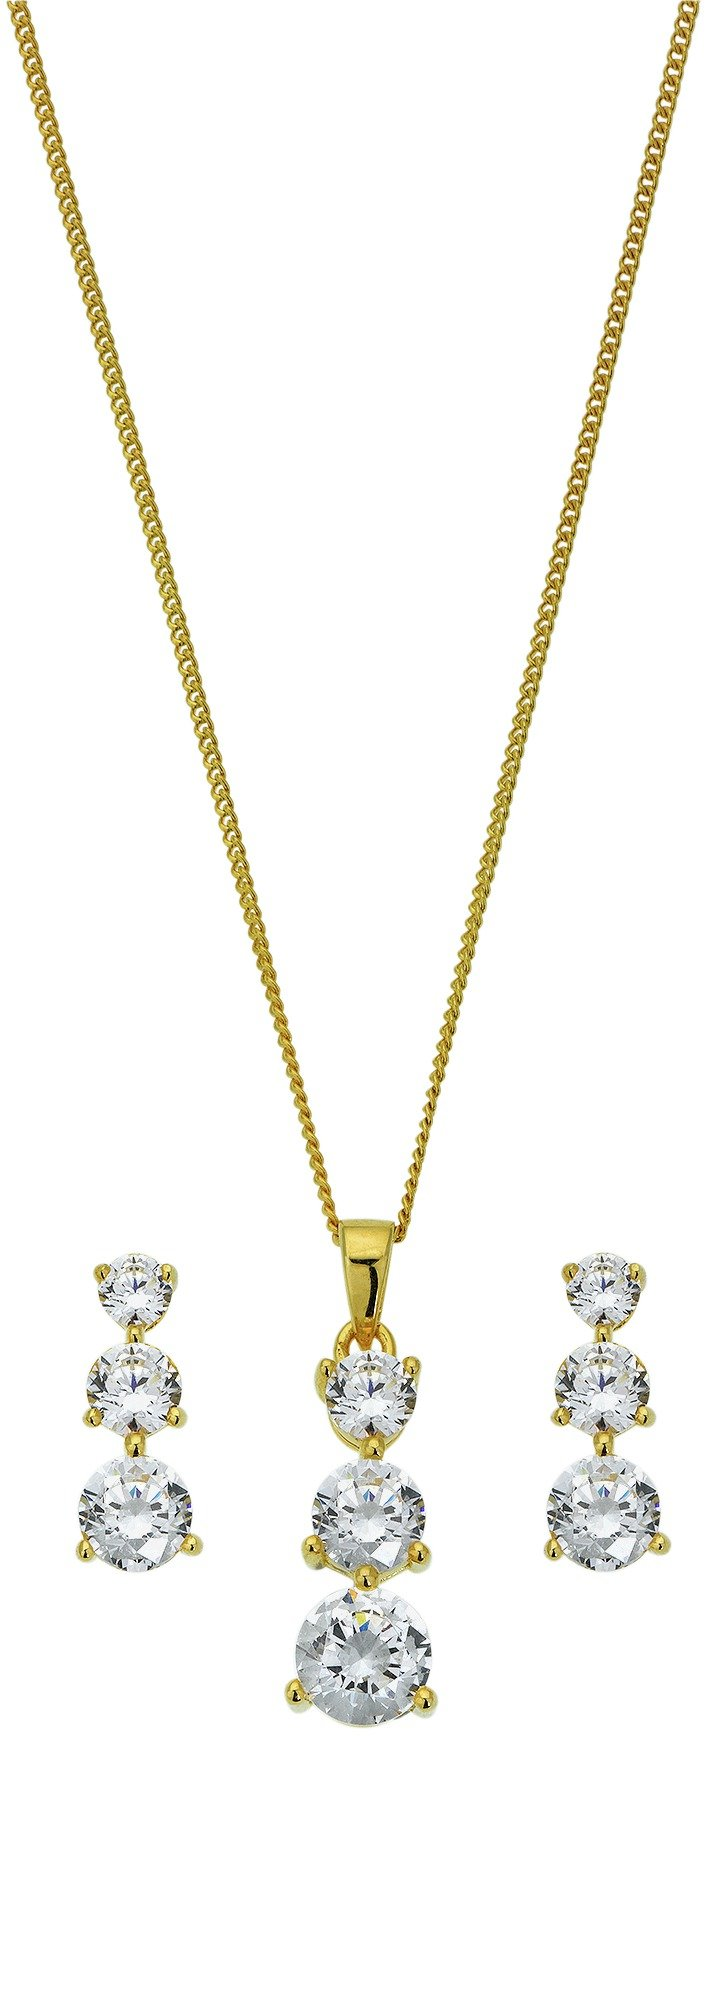 18 Carat Gold - Plated - Silver CZ Trilogy Pendant and Earrings.